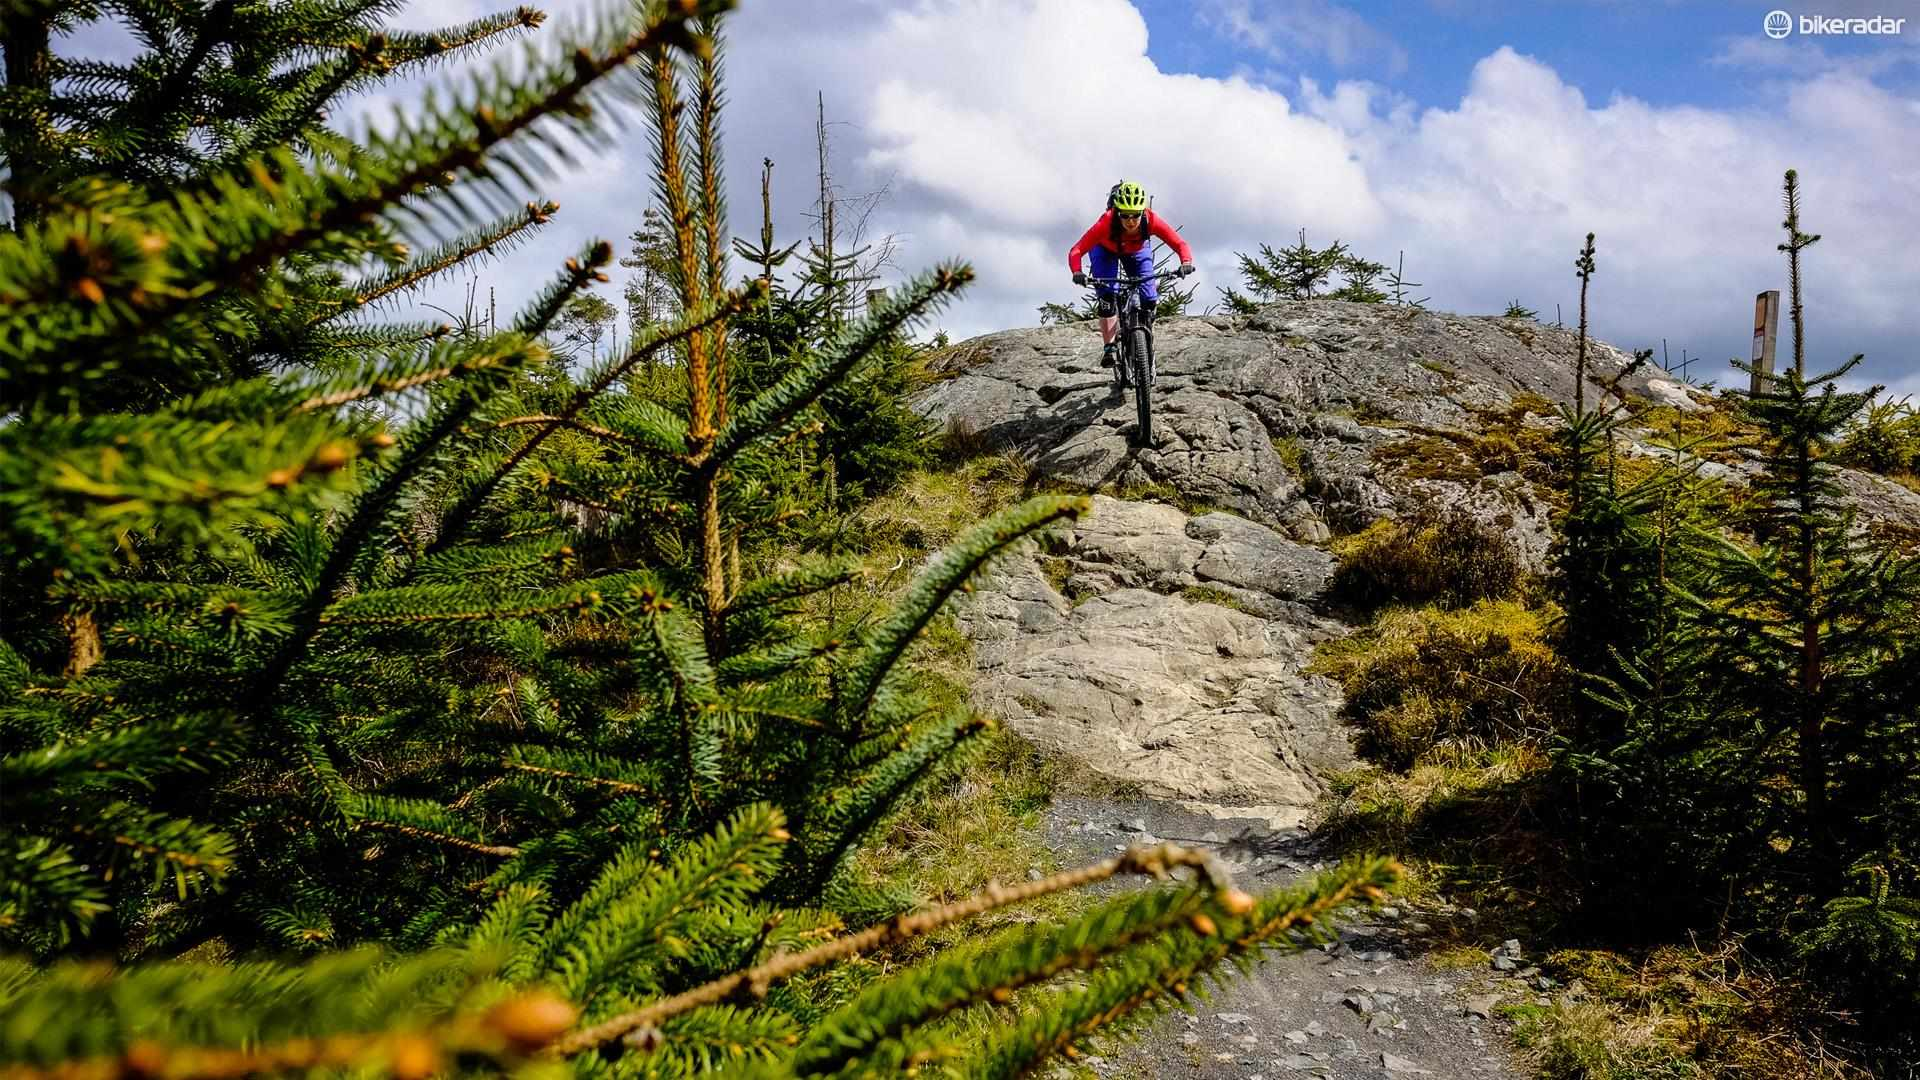 Davagh Forest has a swooping trail network and several rock features to explore